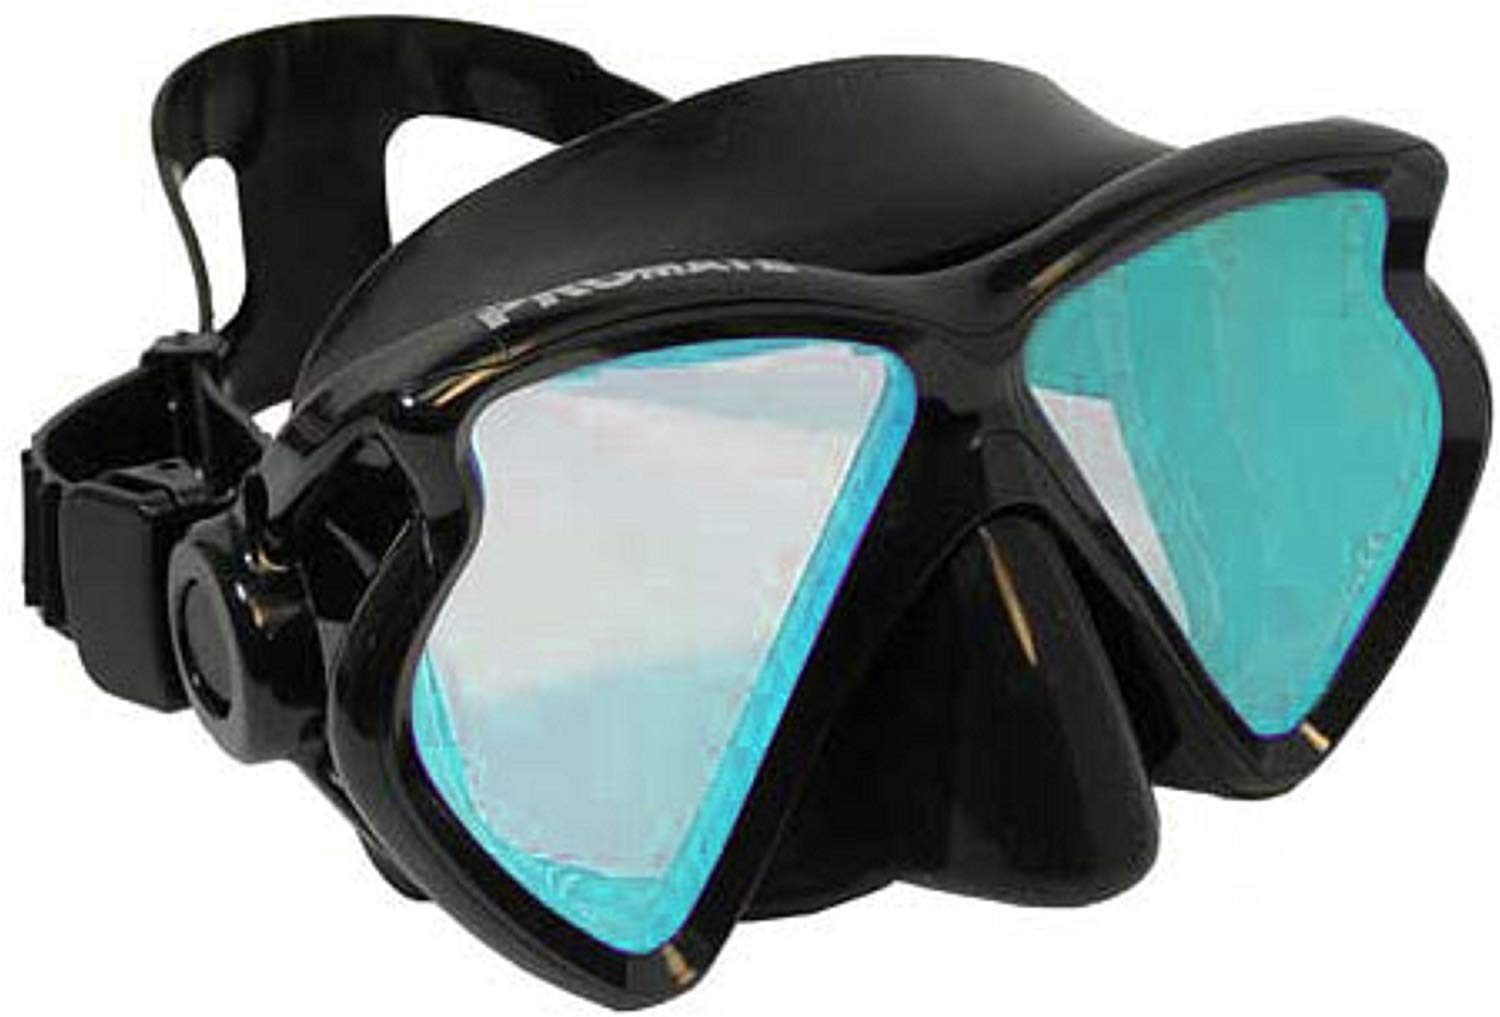 Color correction diving mask